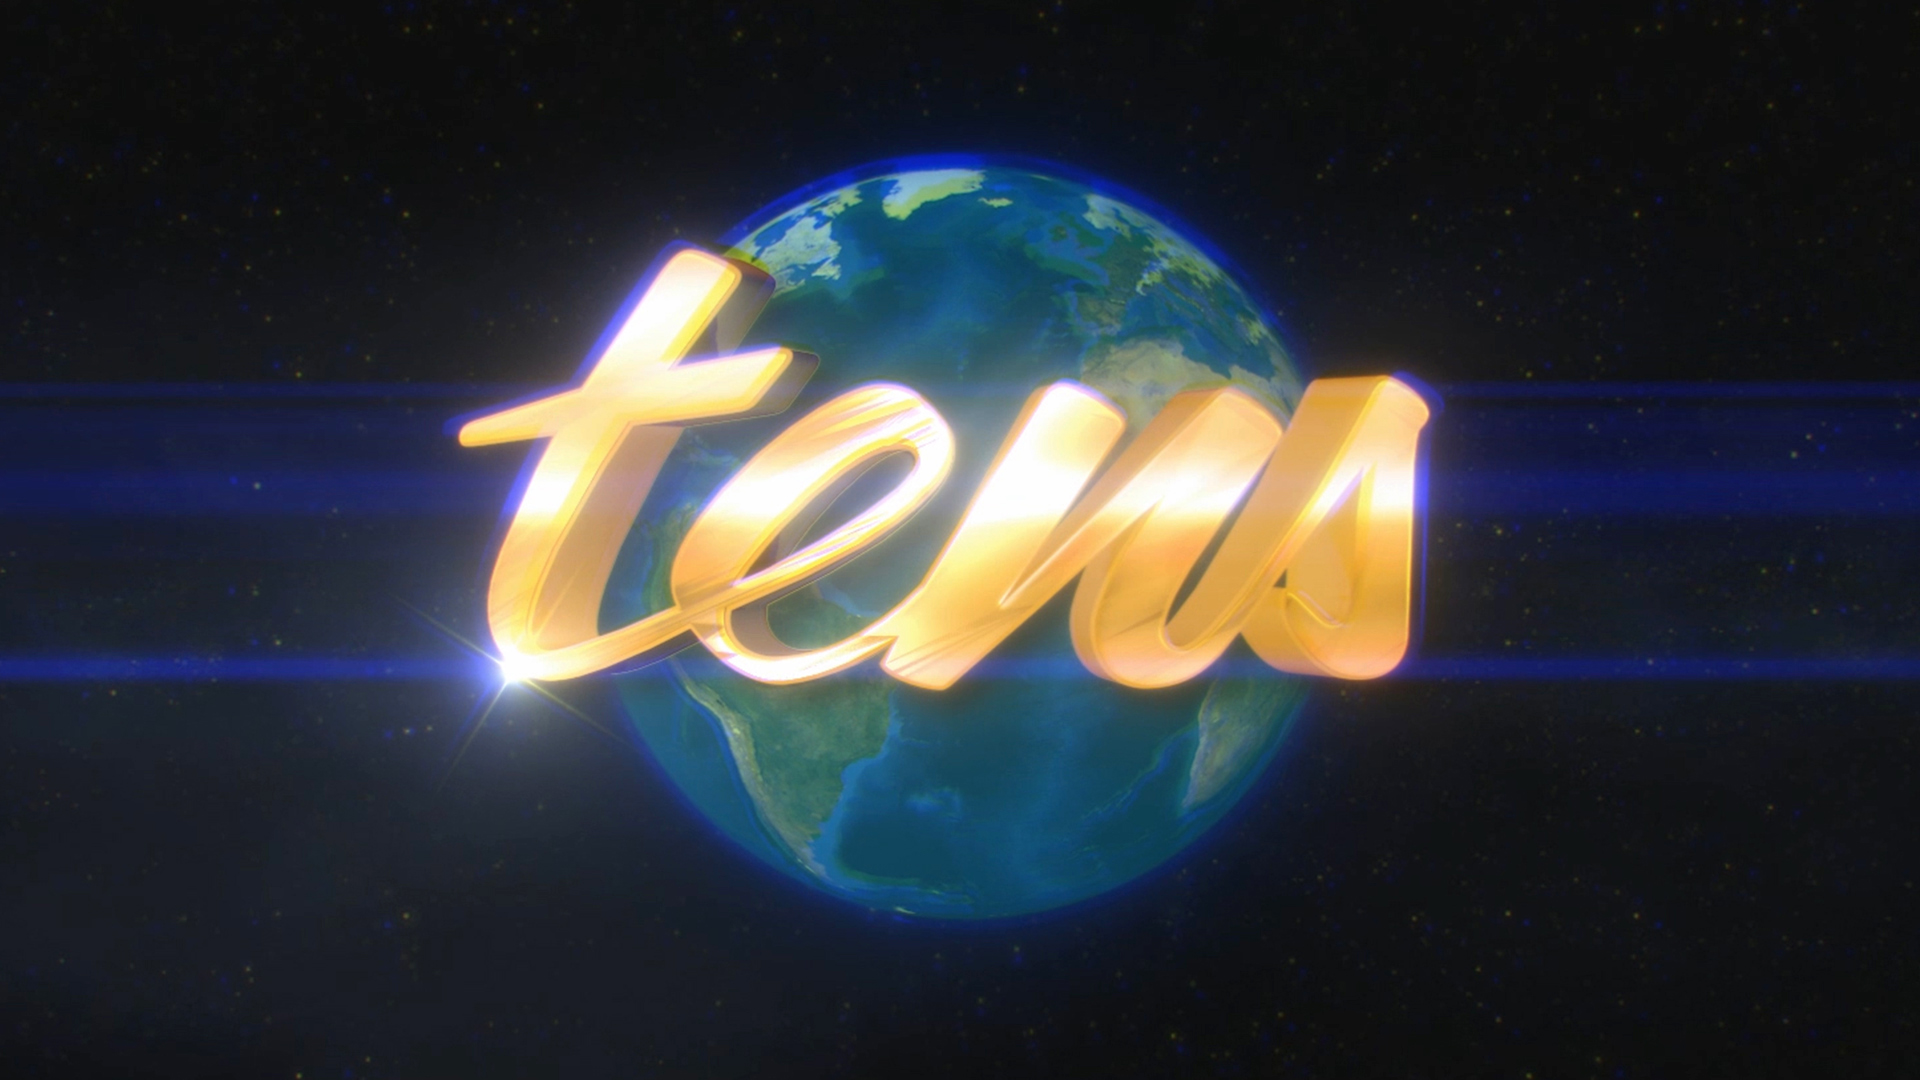 Tens - Youtube commercials ´15